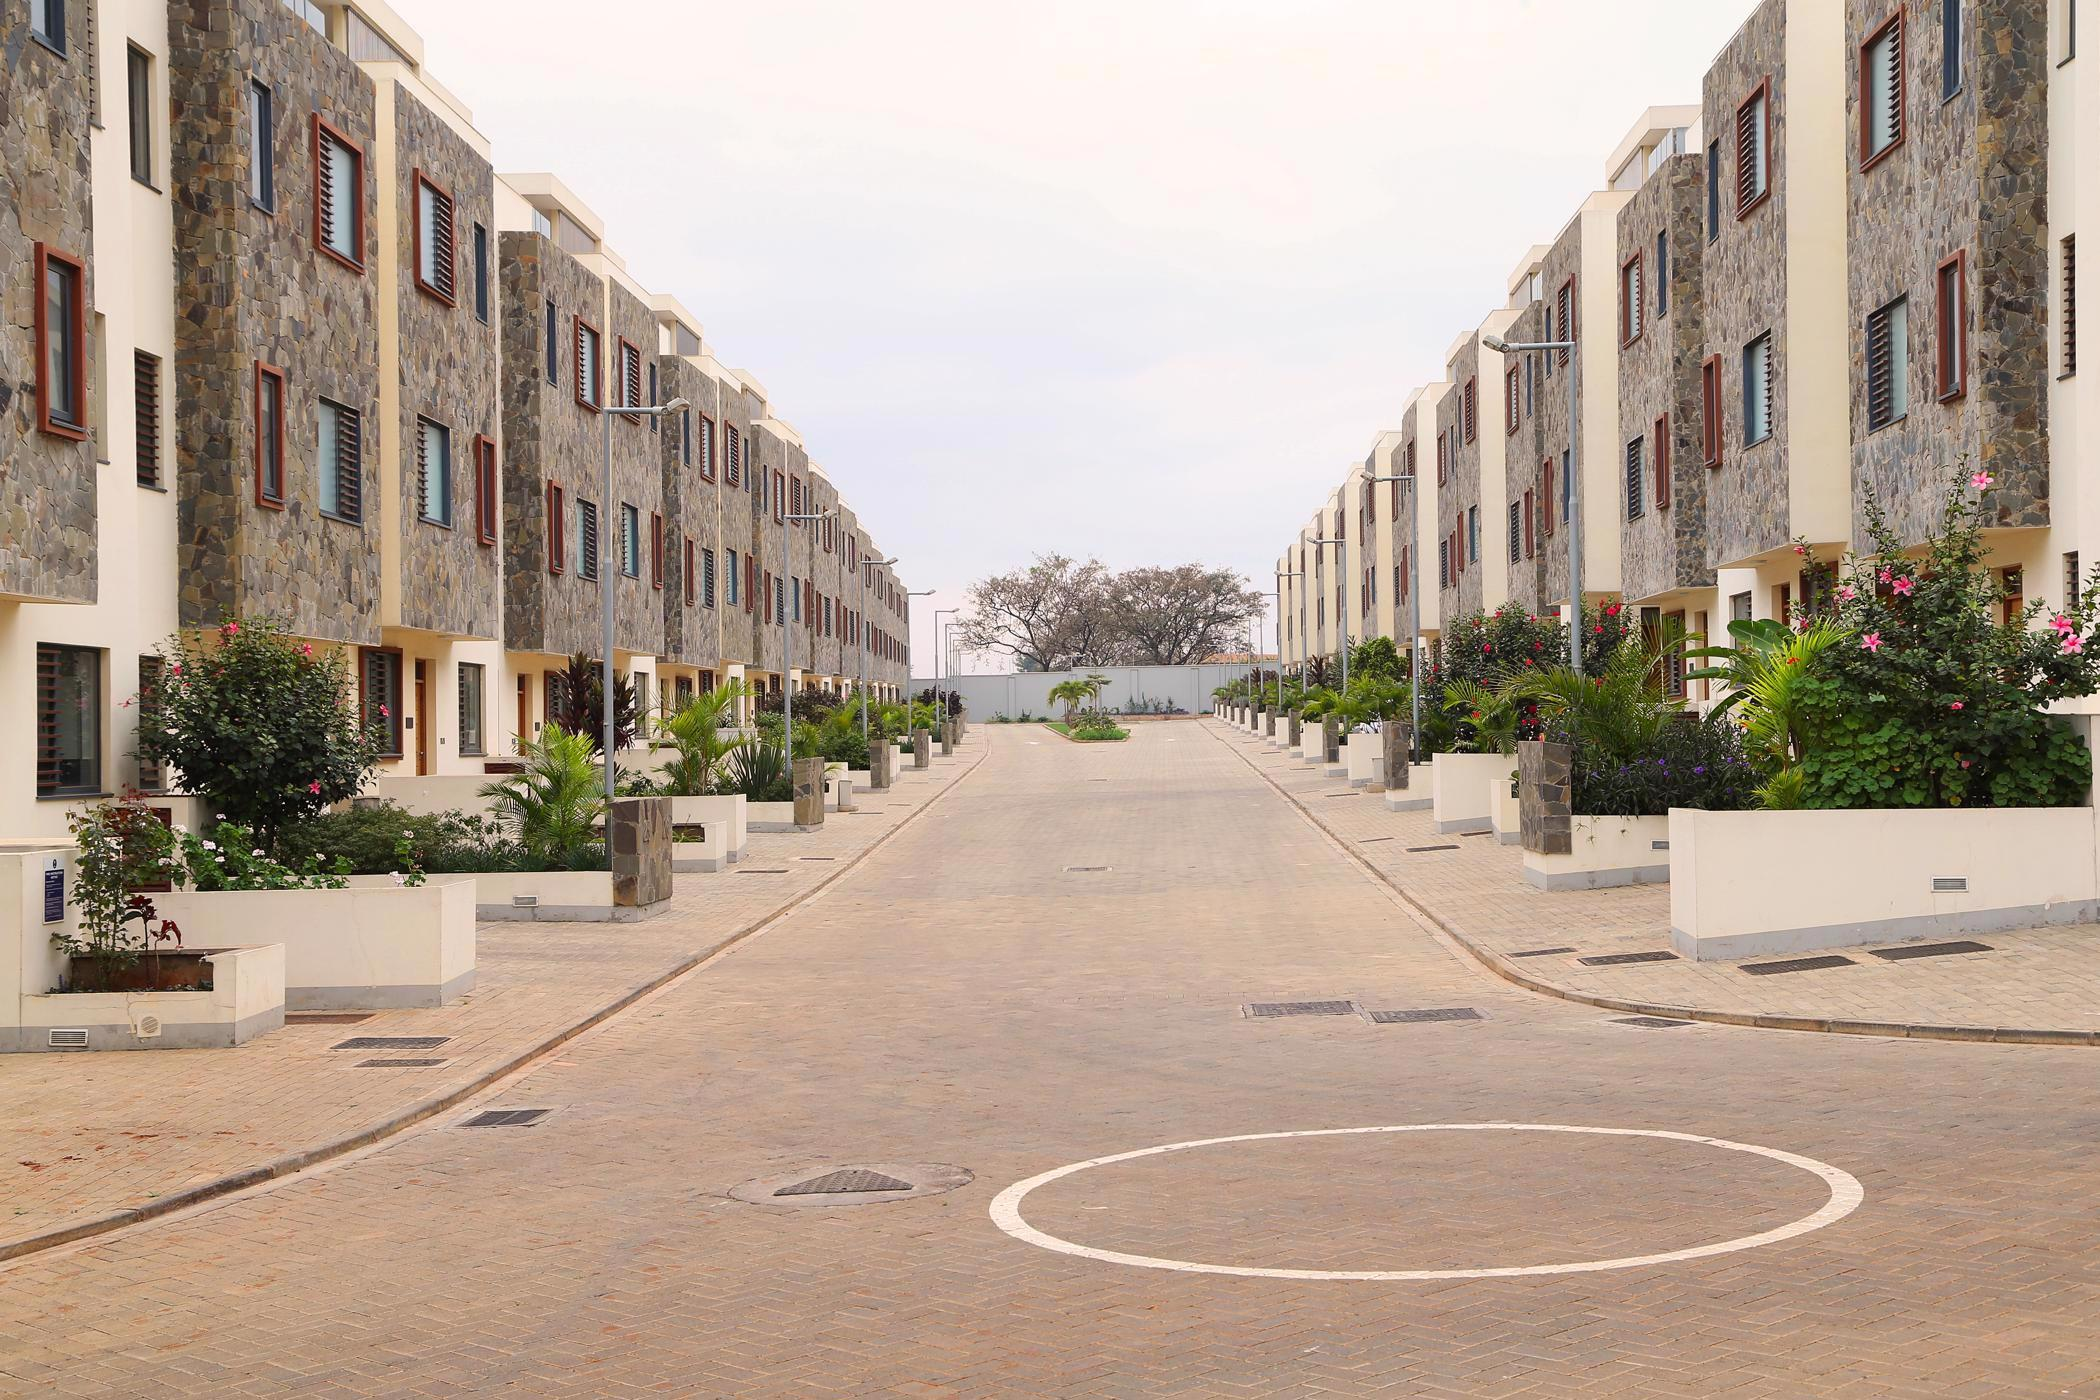 4 bedroom townhouse to rent in Thika Road (Kenya)